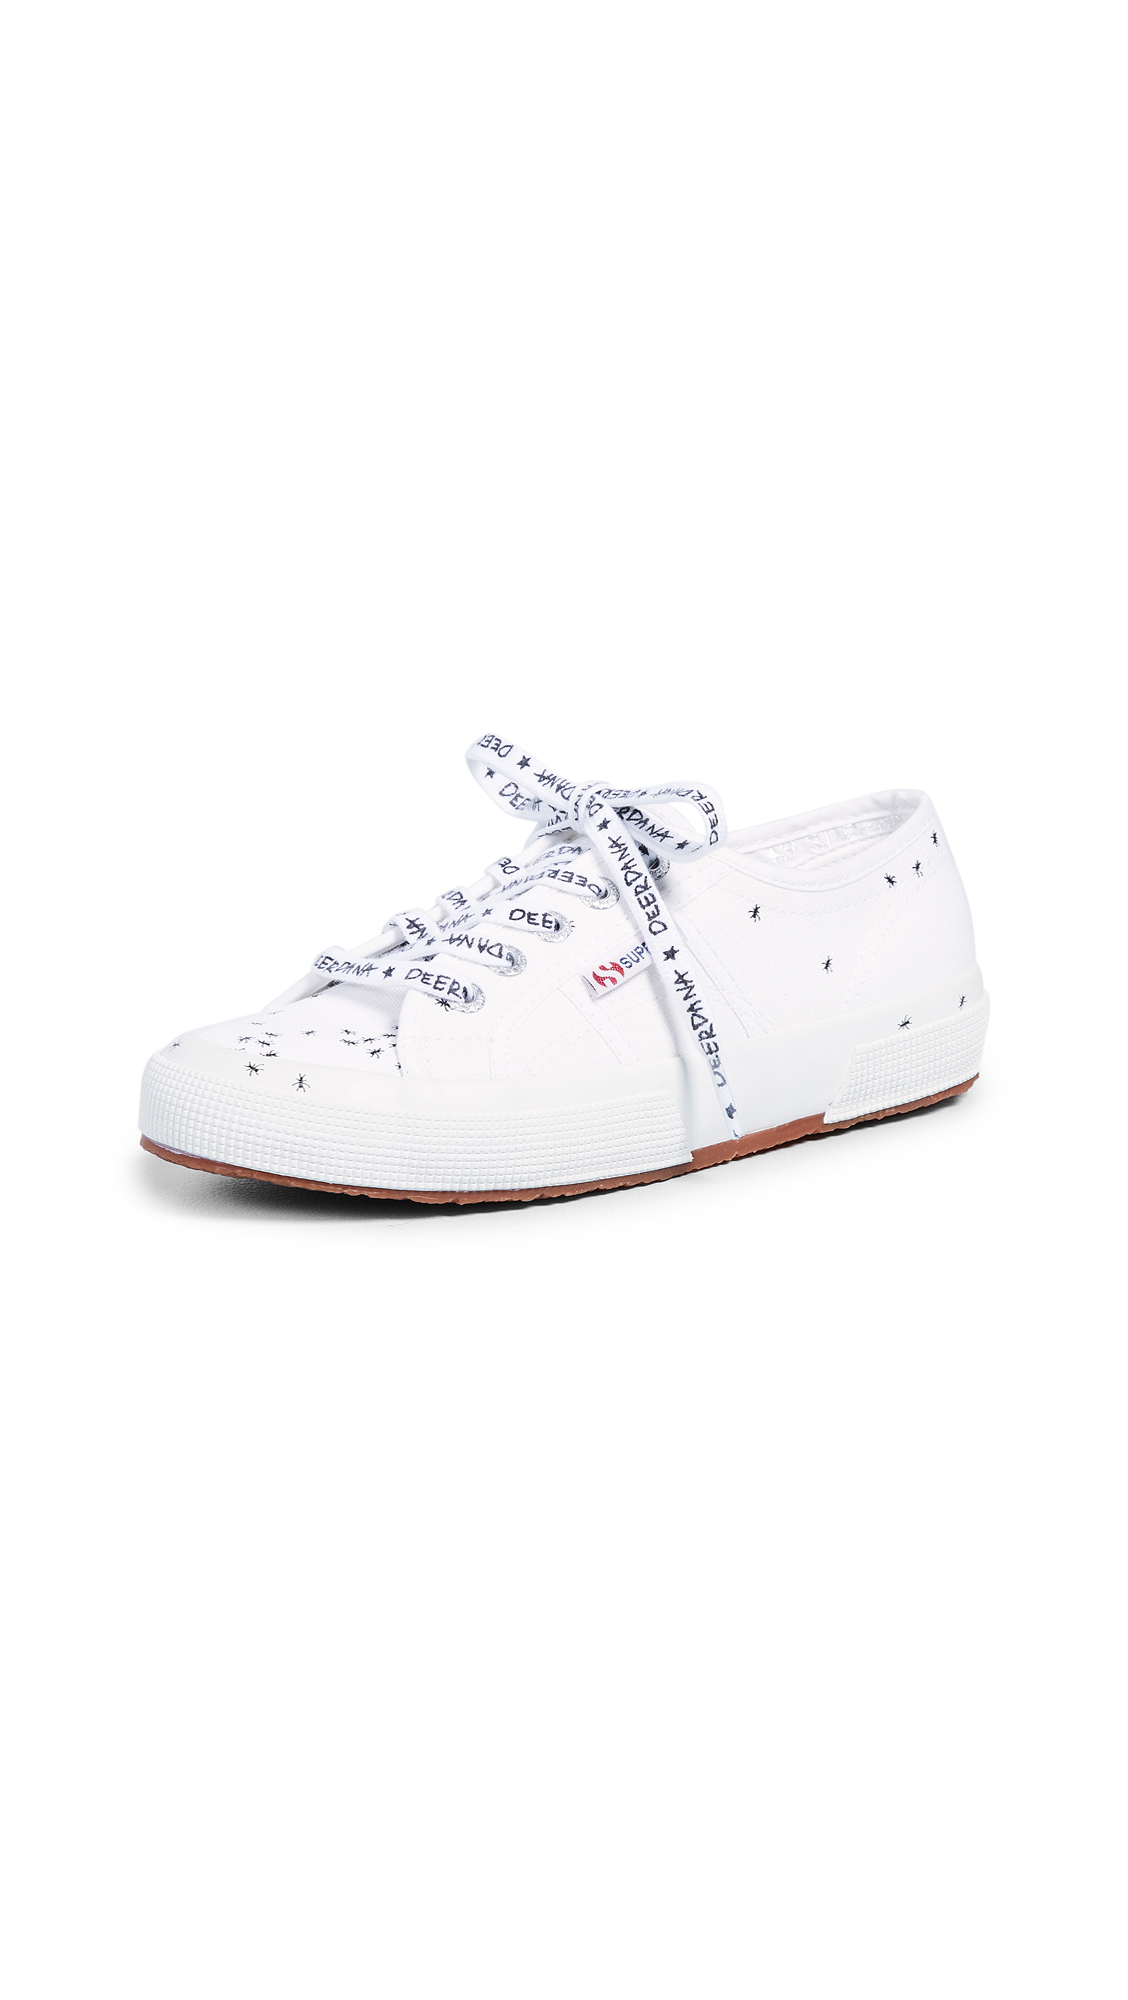 Superga 2750 Deer Dana Ant Sneakers - White